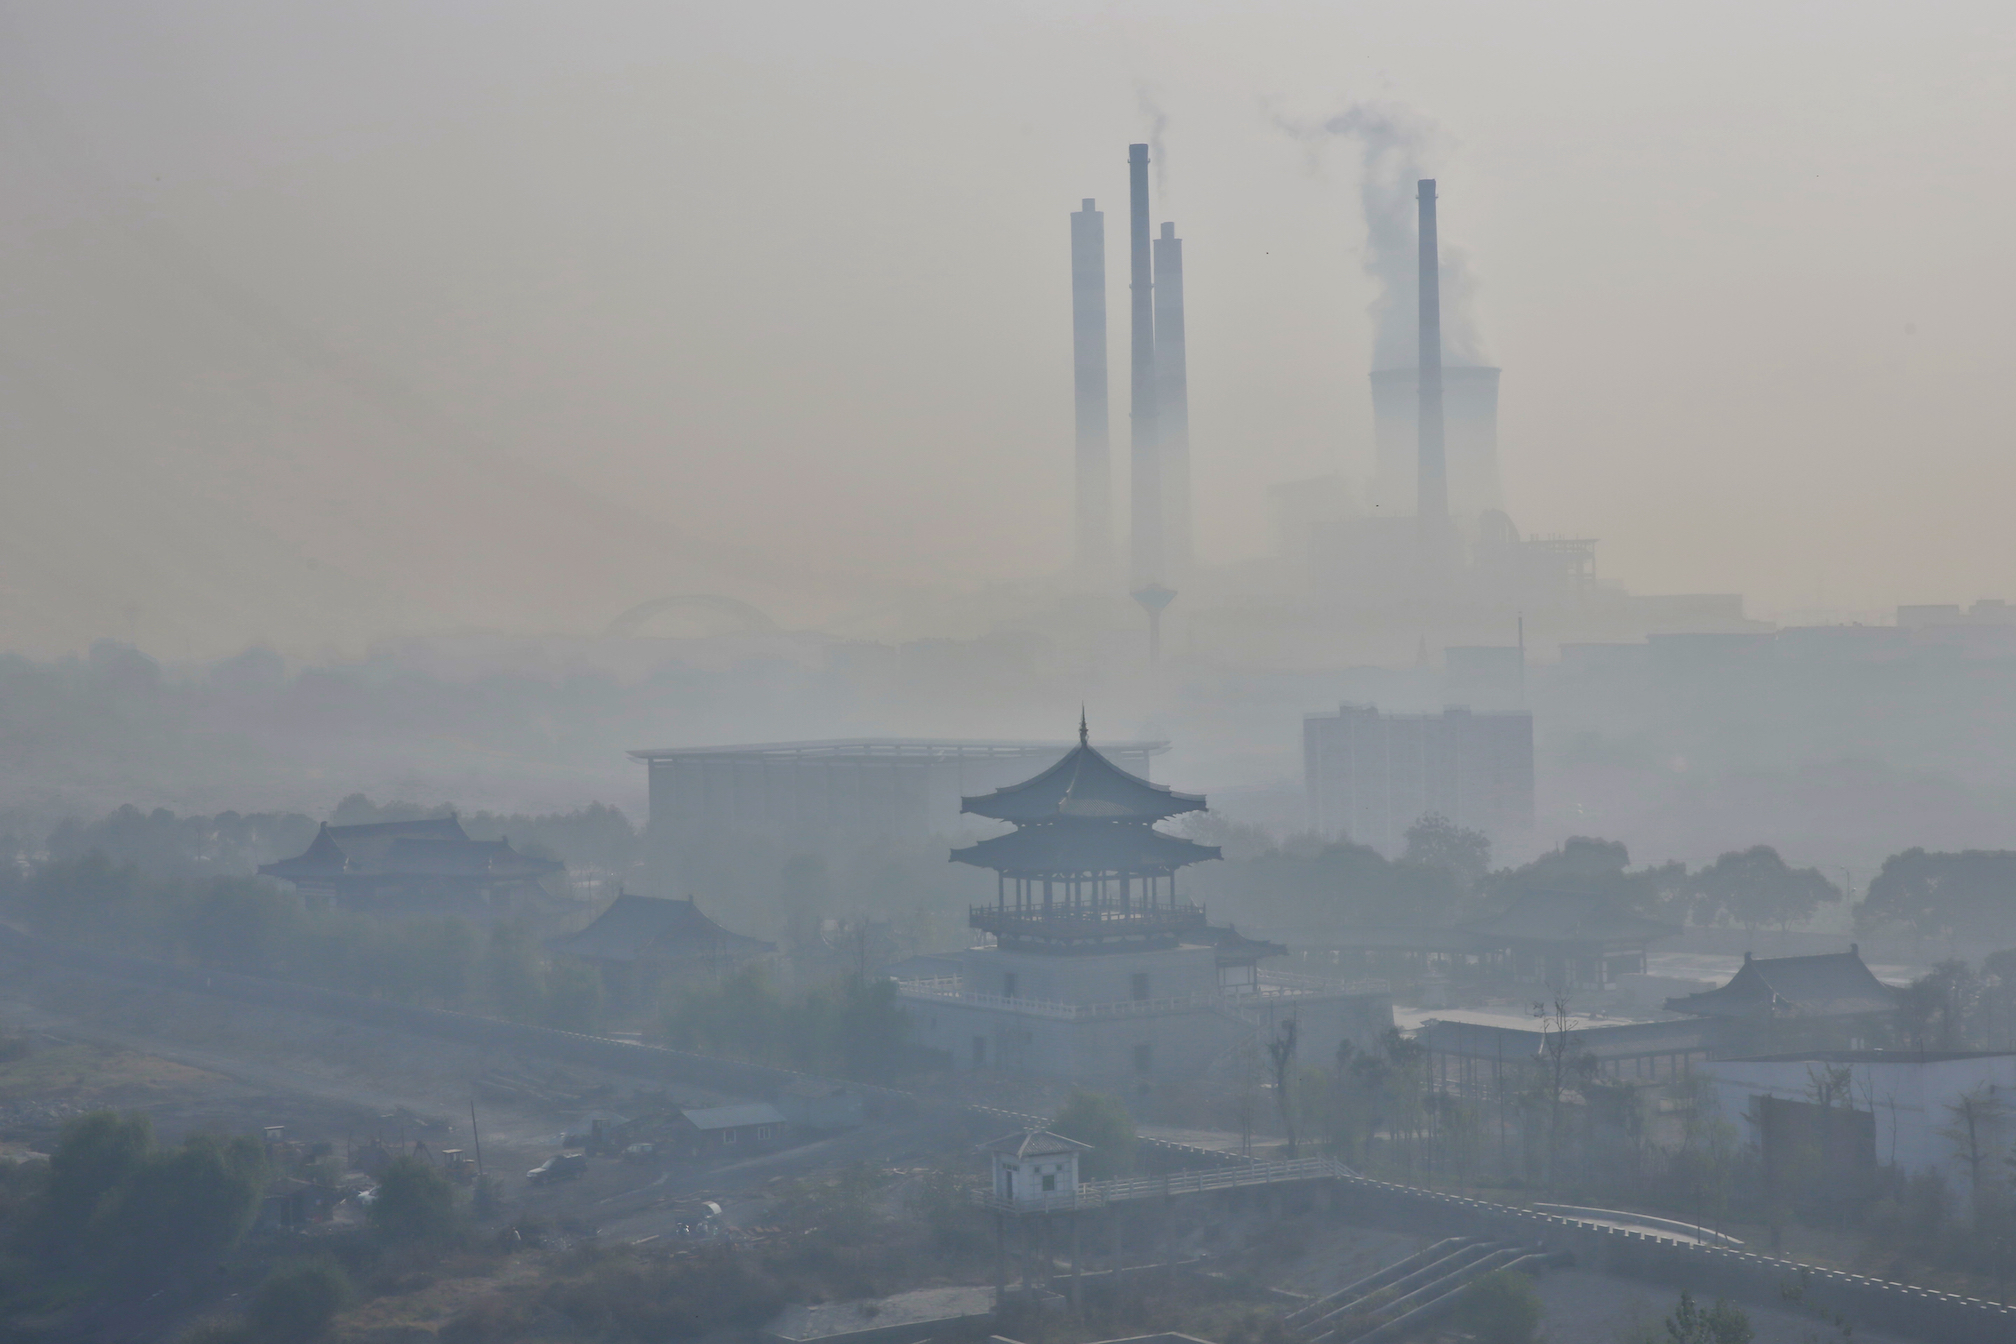 While the monetary cost for Chinese products may seem low, the air pollution emitted from such international trade has taken a massive toll on human lives.